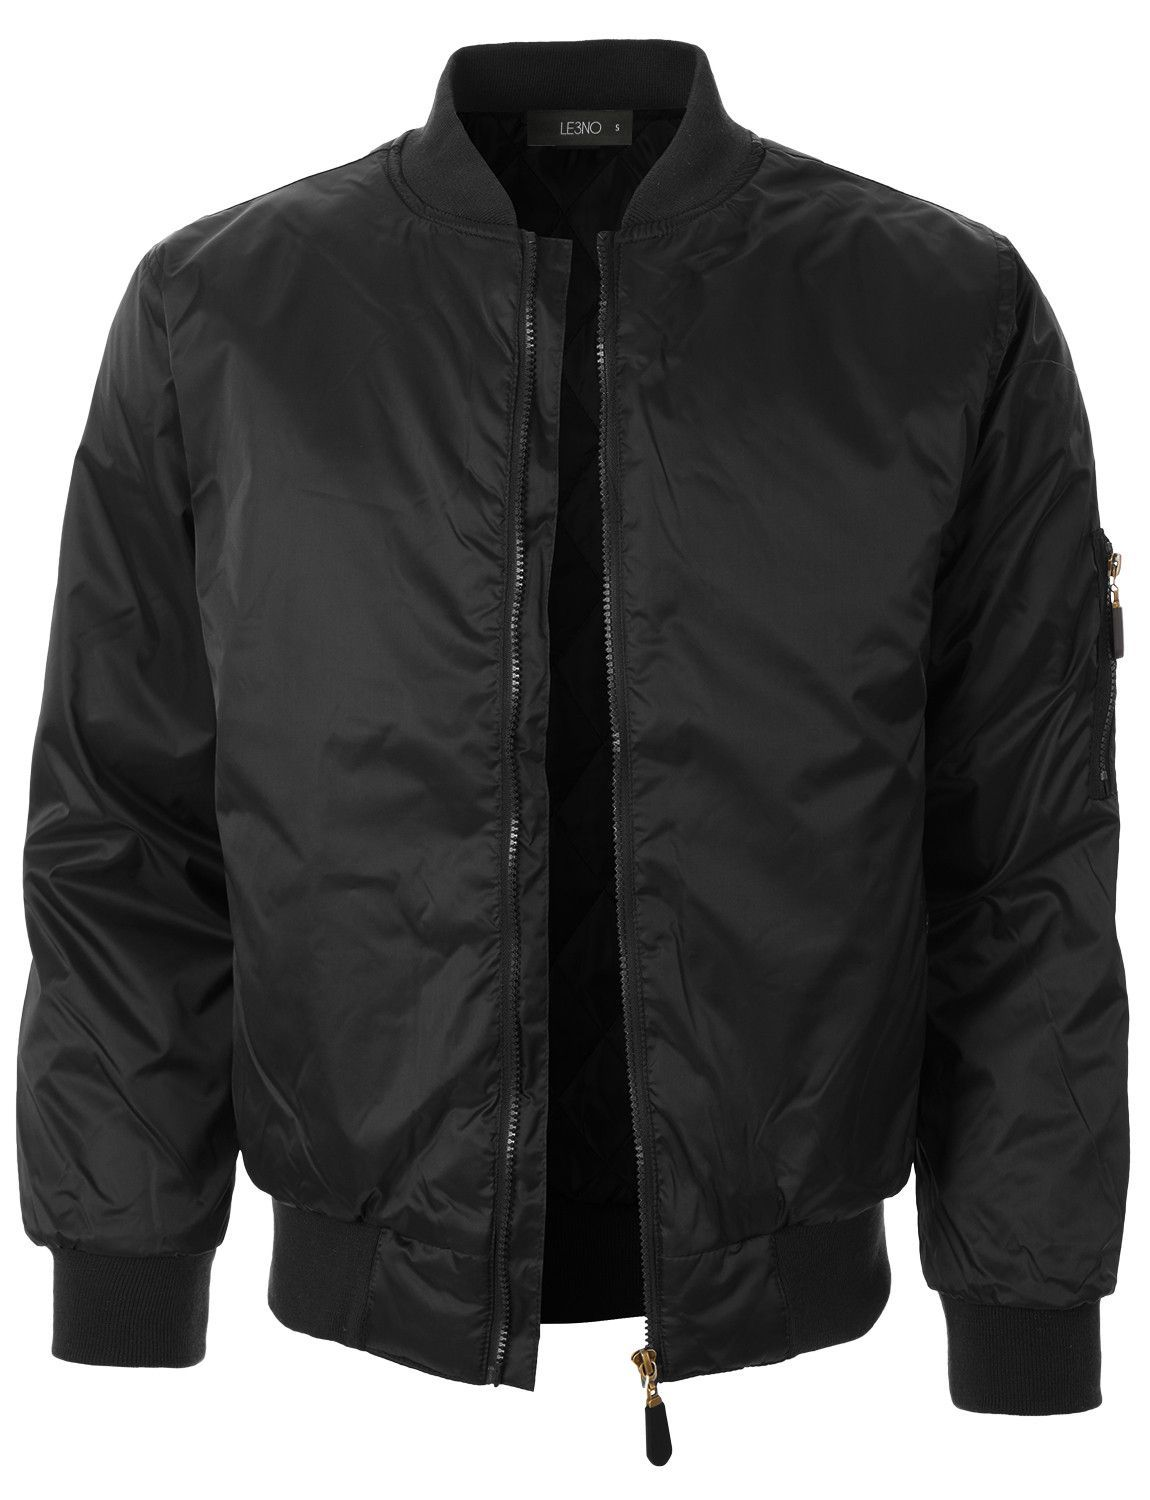 c3ba01cda Mens Lightweight Classic Zip Up Bomber Jacket with Pockets | Buyable ...